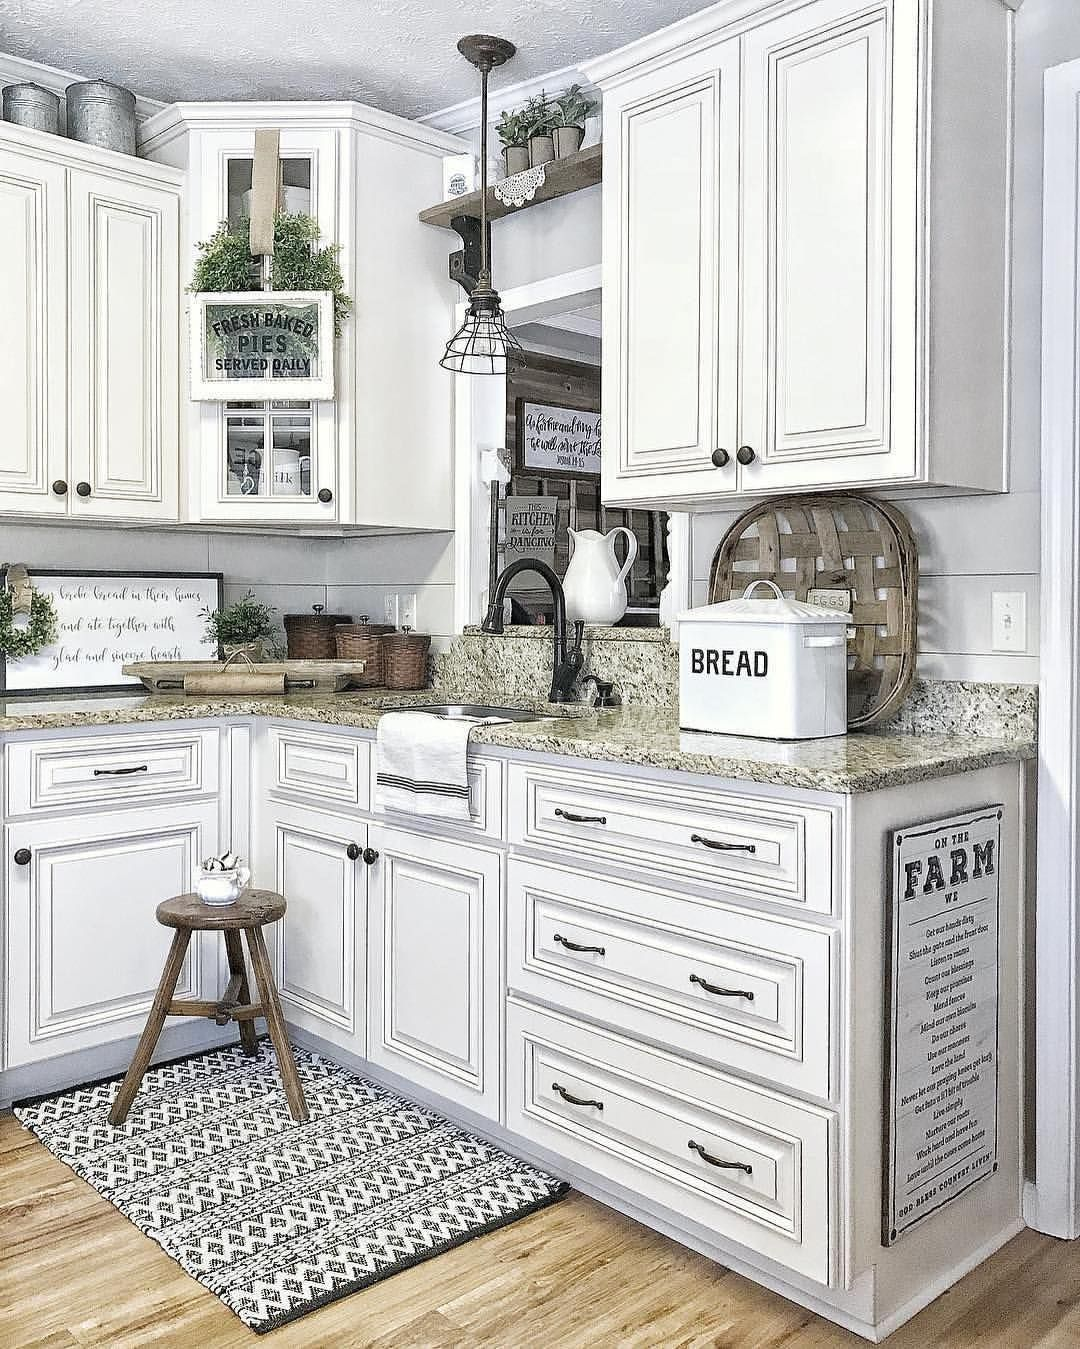 468 Likes 11 Comments Shawnie My Favorite Place On Instagram Hey Y All Antique White Kitchen Antique White Kitchen Cabinets Farmhouse Style Kitchen